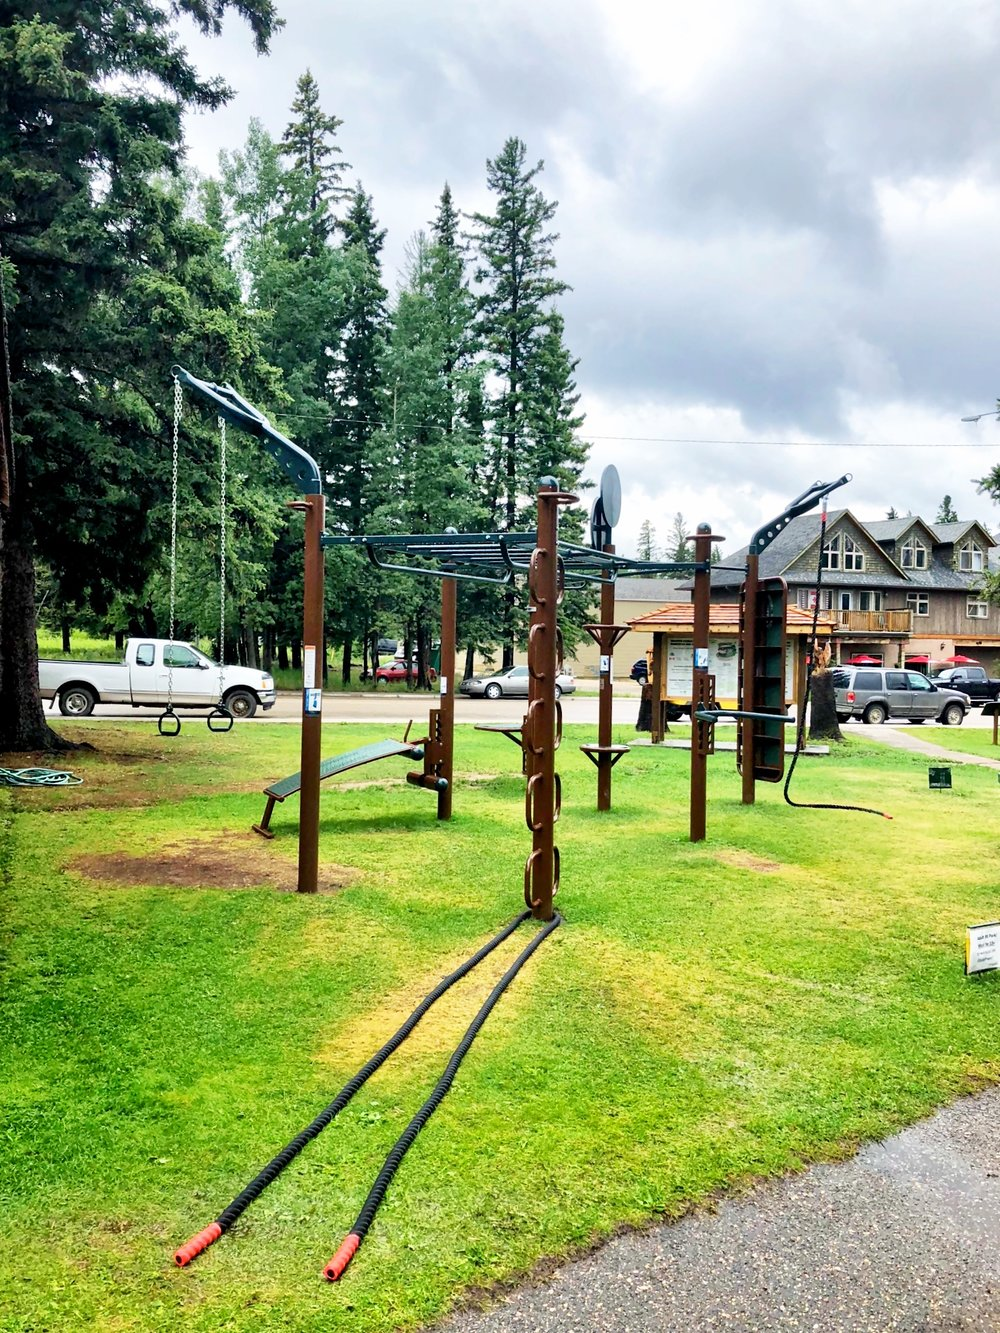 Parks and Recs for outdoor fitness